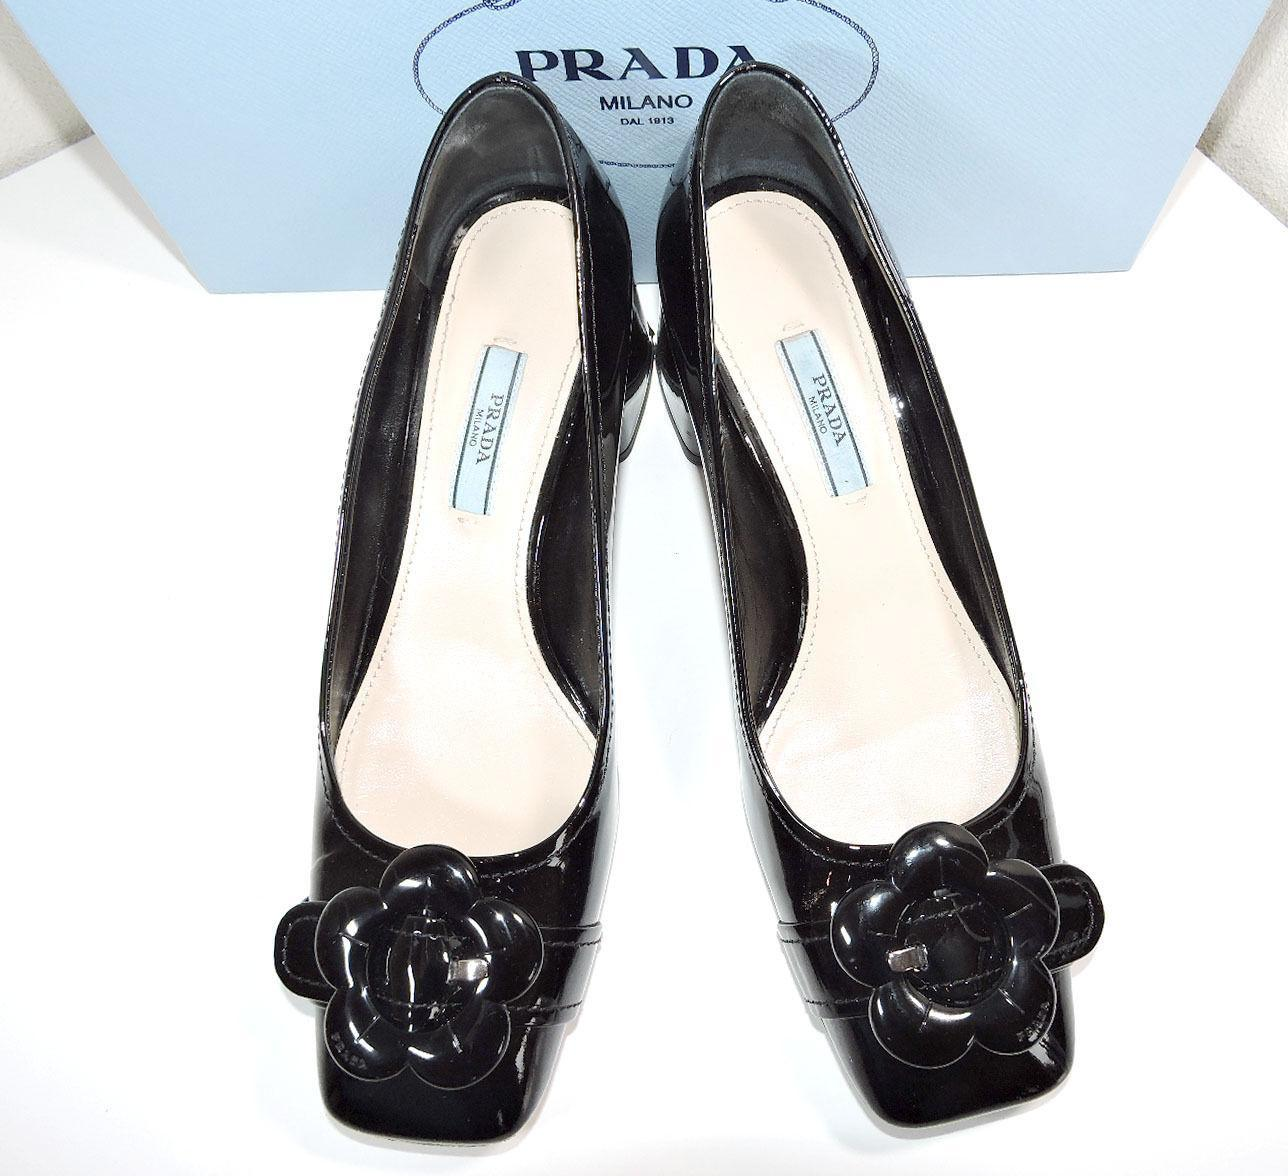 Prada Flower Low Heel Black Leather Pump  Logo Shoe 37.5- 7.5